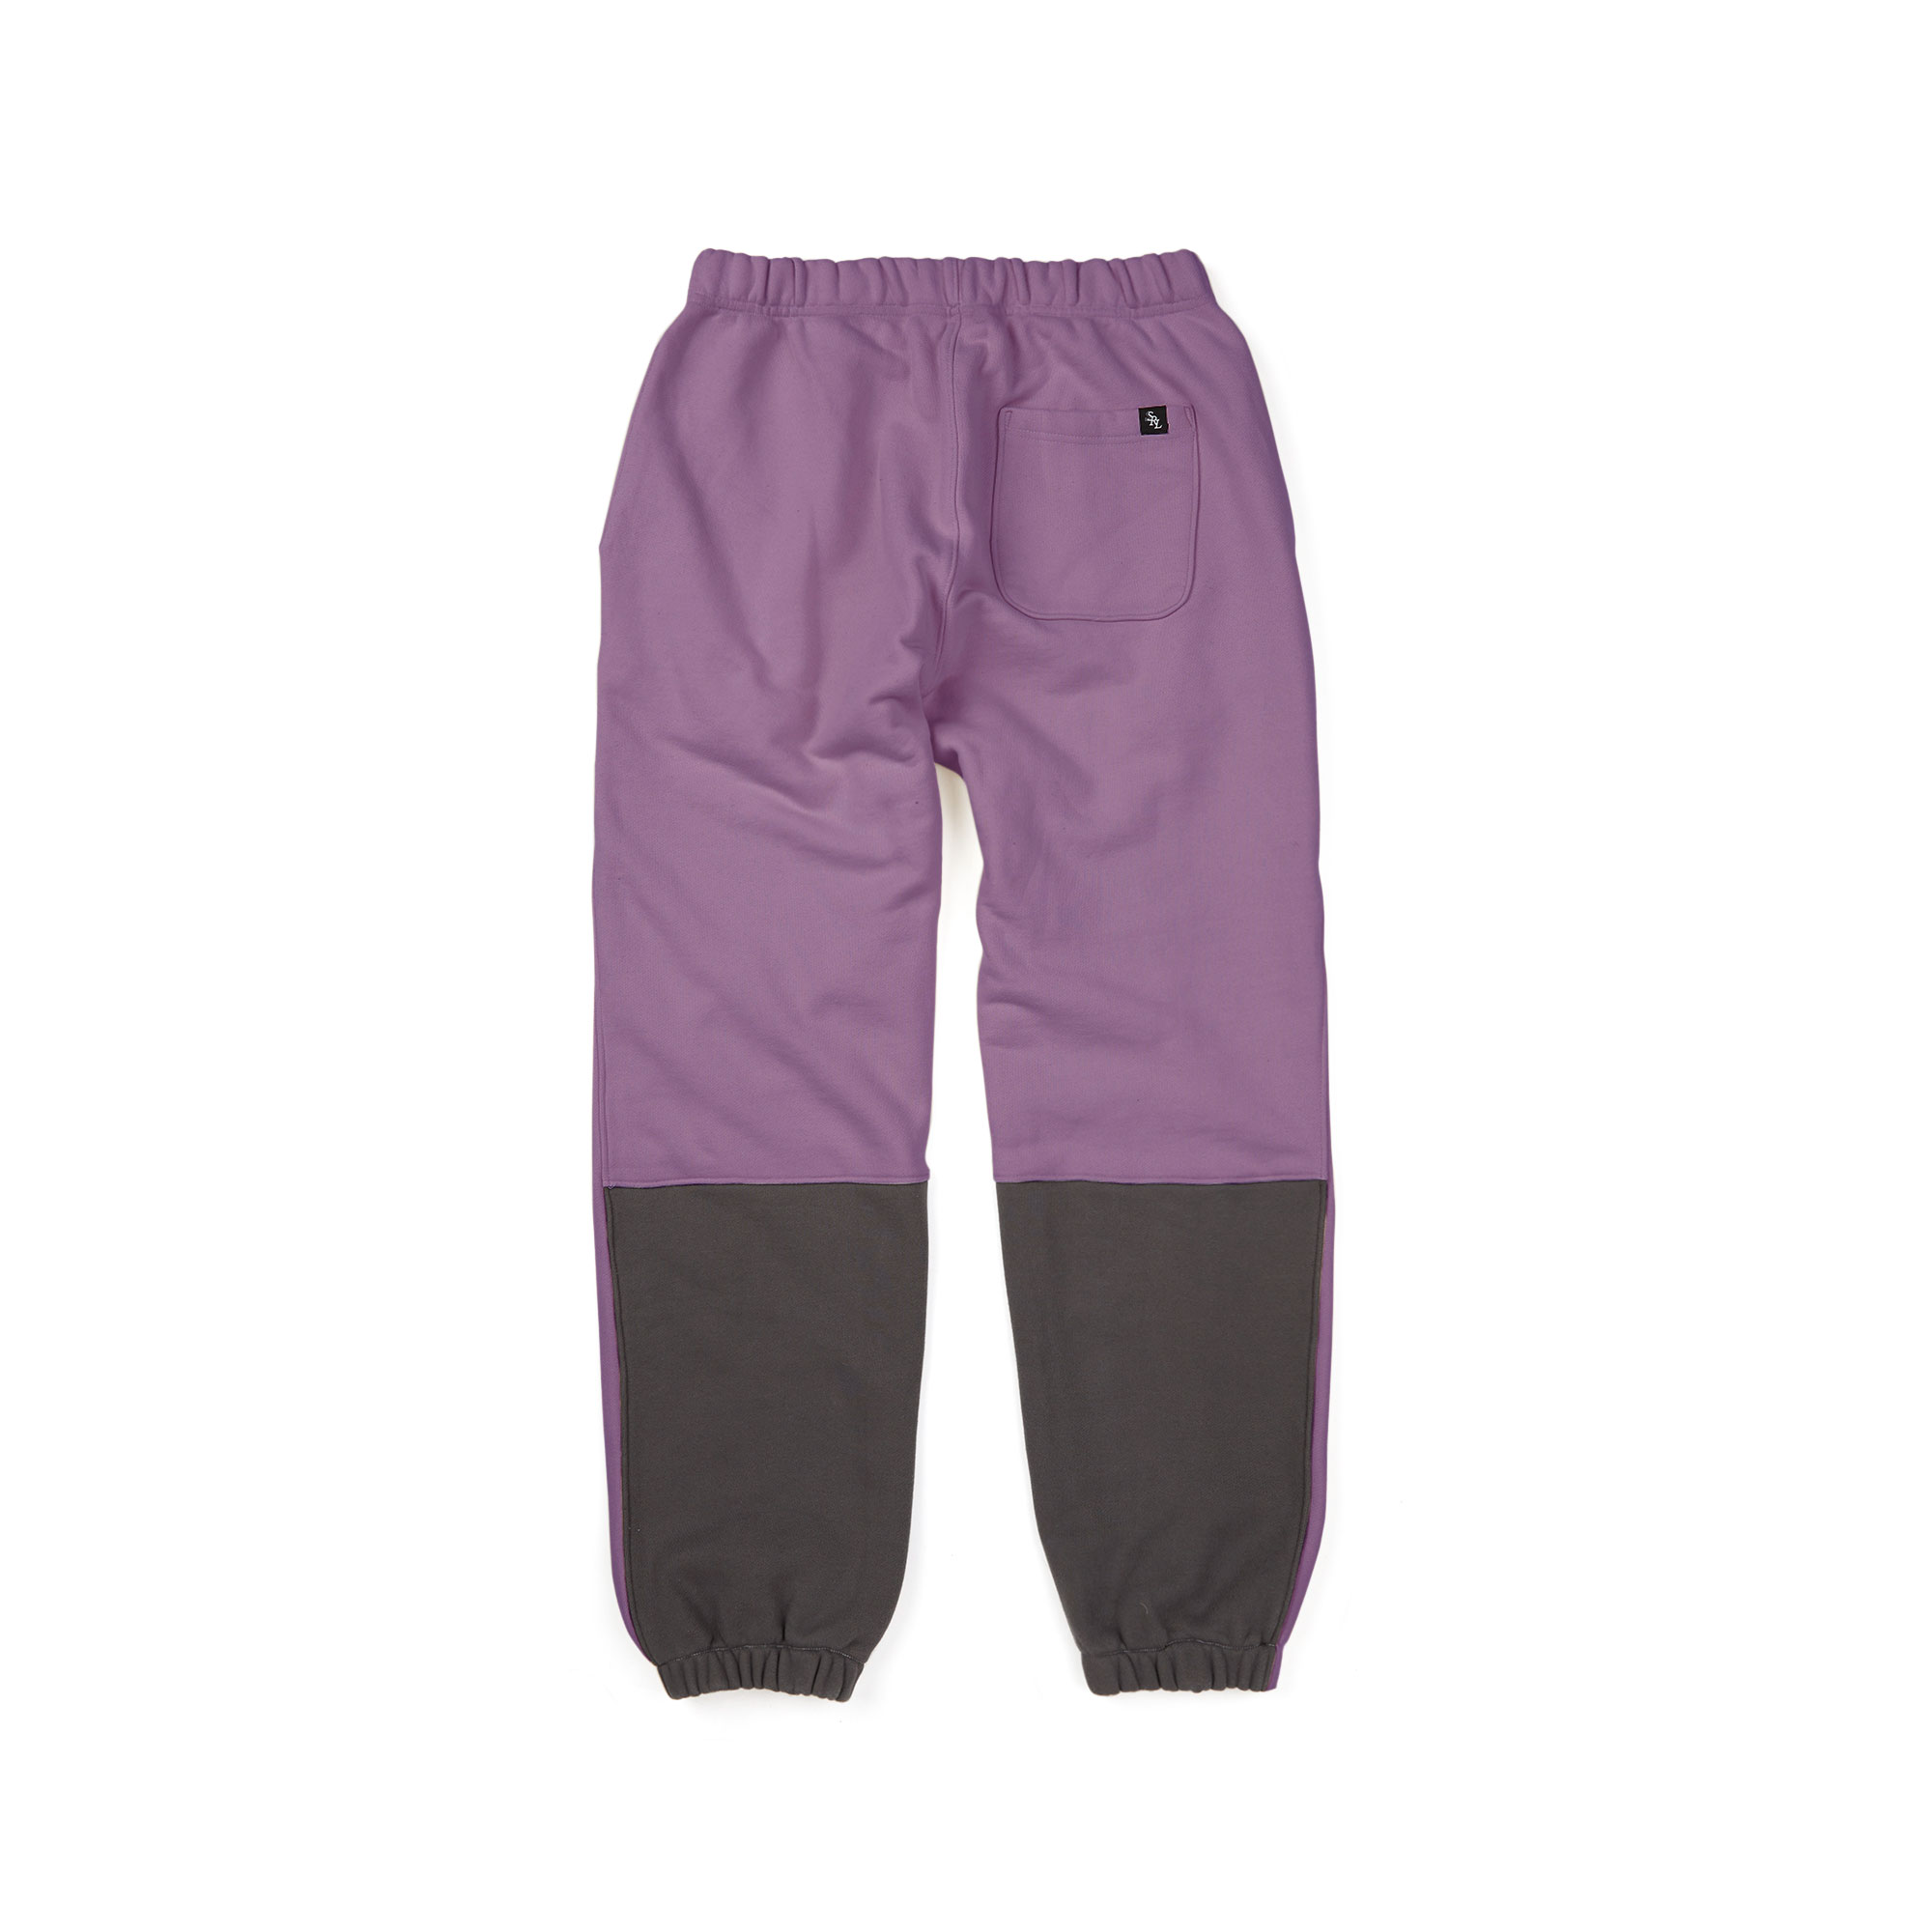 calf sweat pants / purple